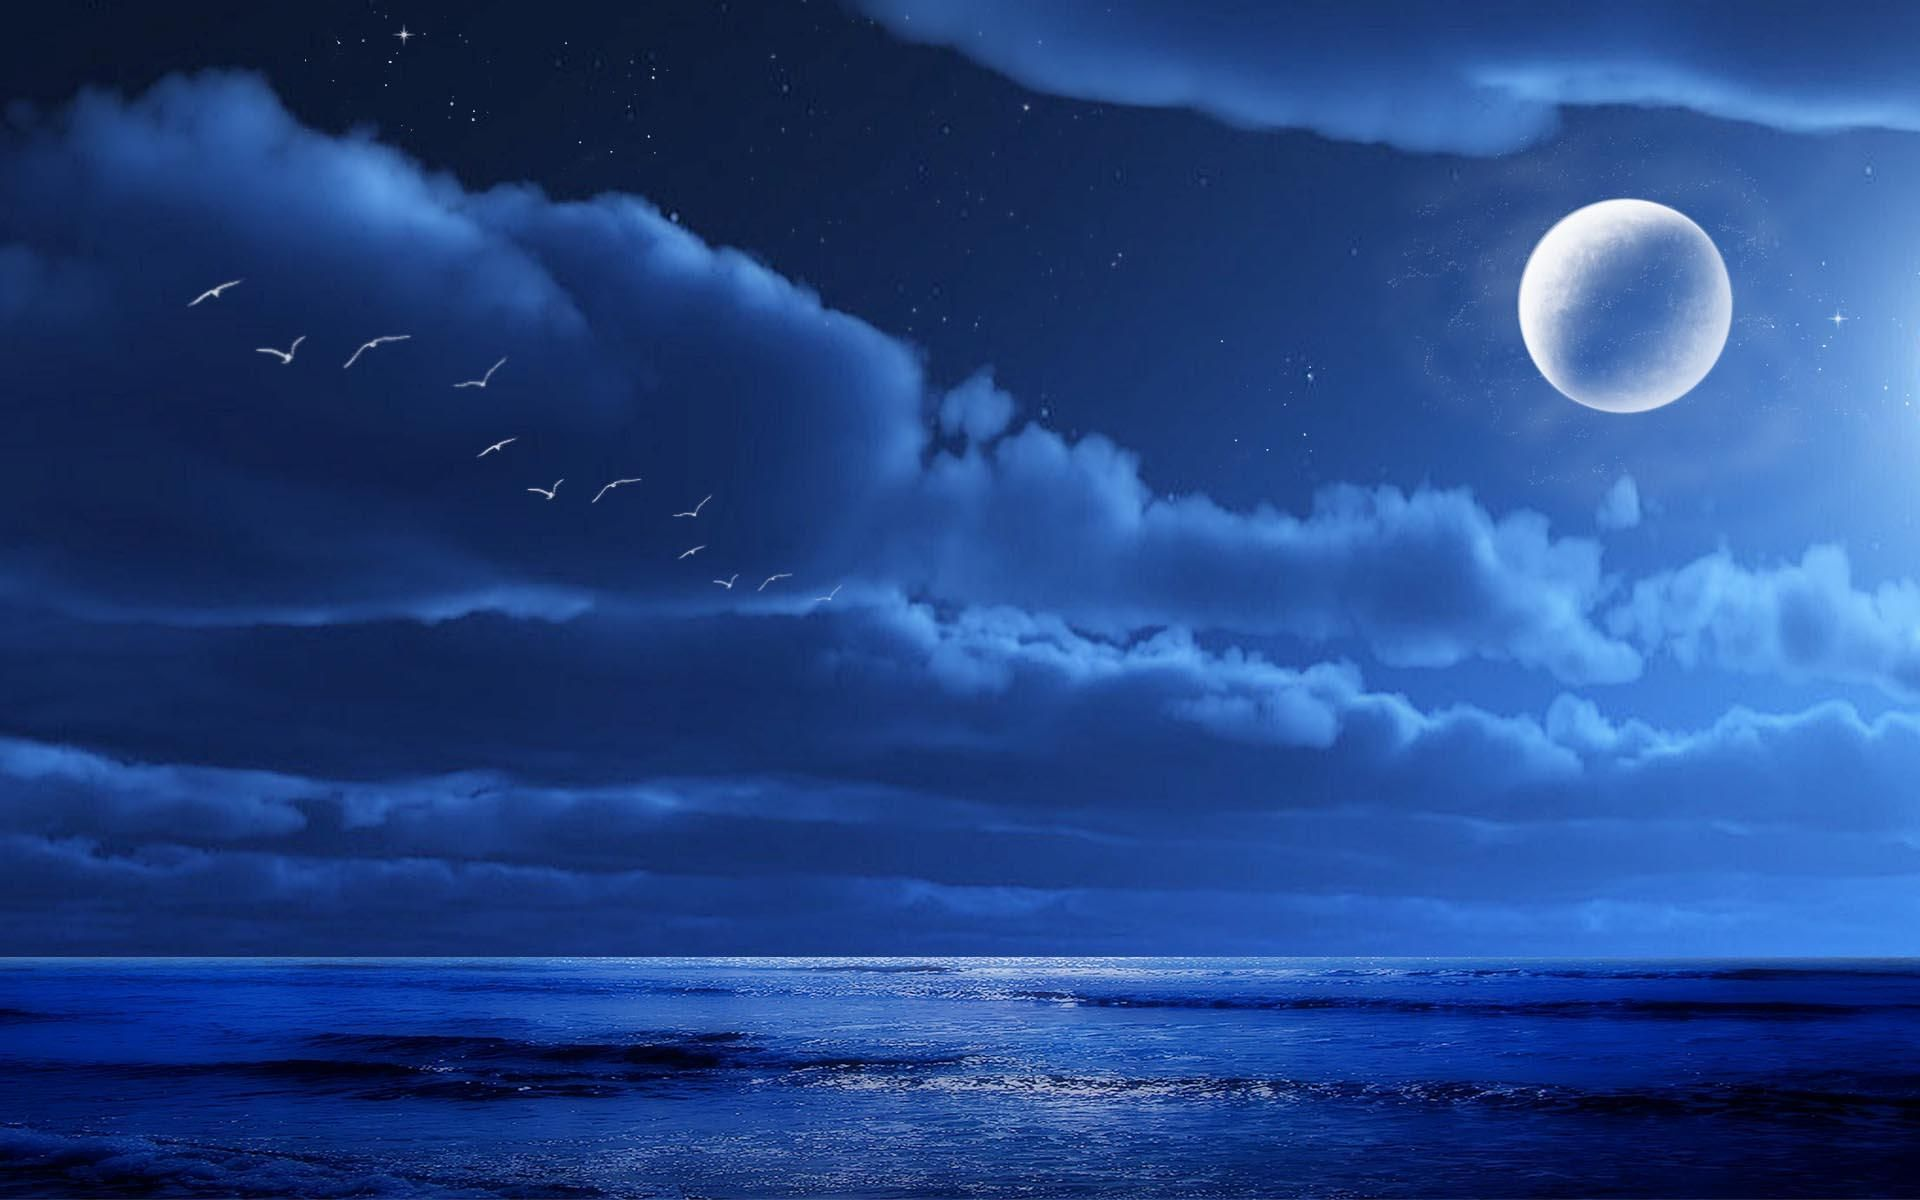 Hd Midnight Moon Wallpaper Anime Scenery Beautiful Landscapes Wallpaper